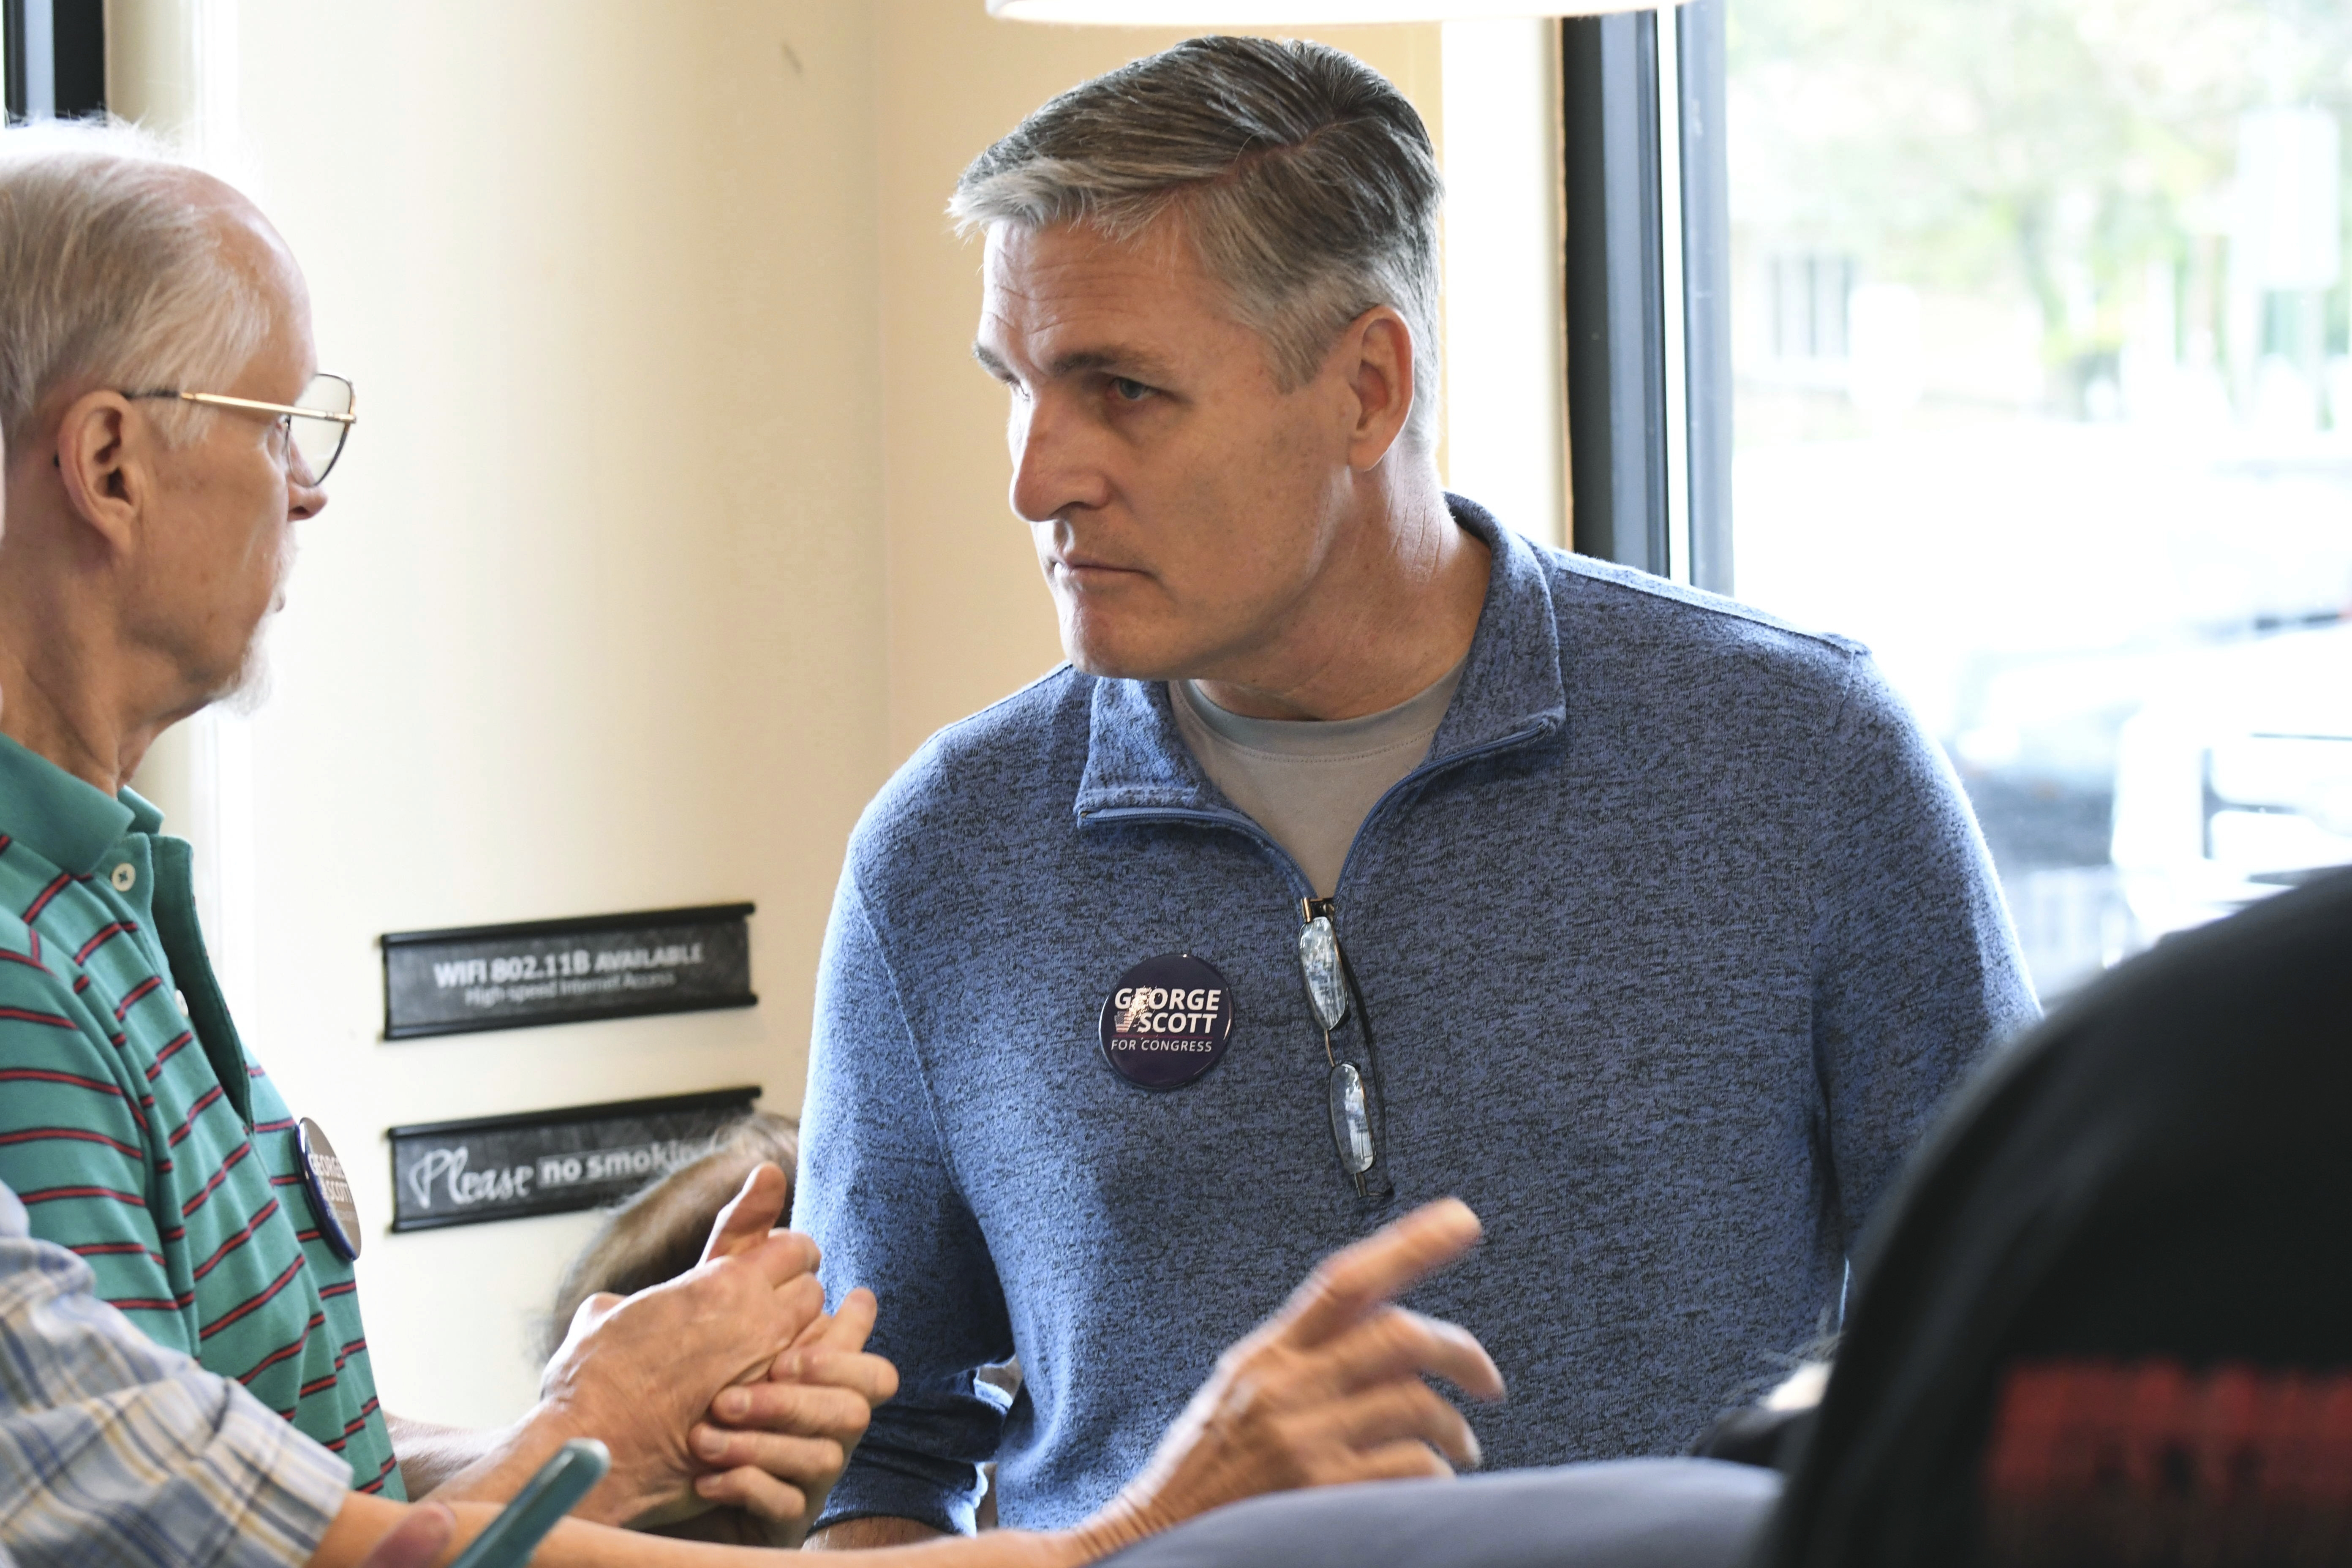 George Scott, the Democratic candidate for Congress in a Republican-leaning seat in central Pennsylvania, listens to volunteer canvassers in Camp Hill, Pa. on Oct. 6.